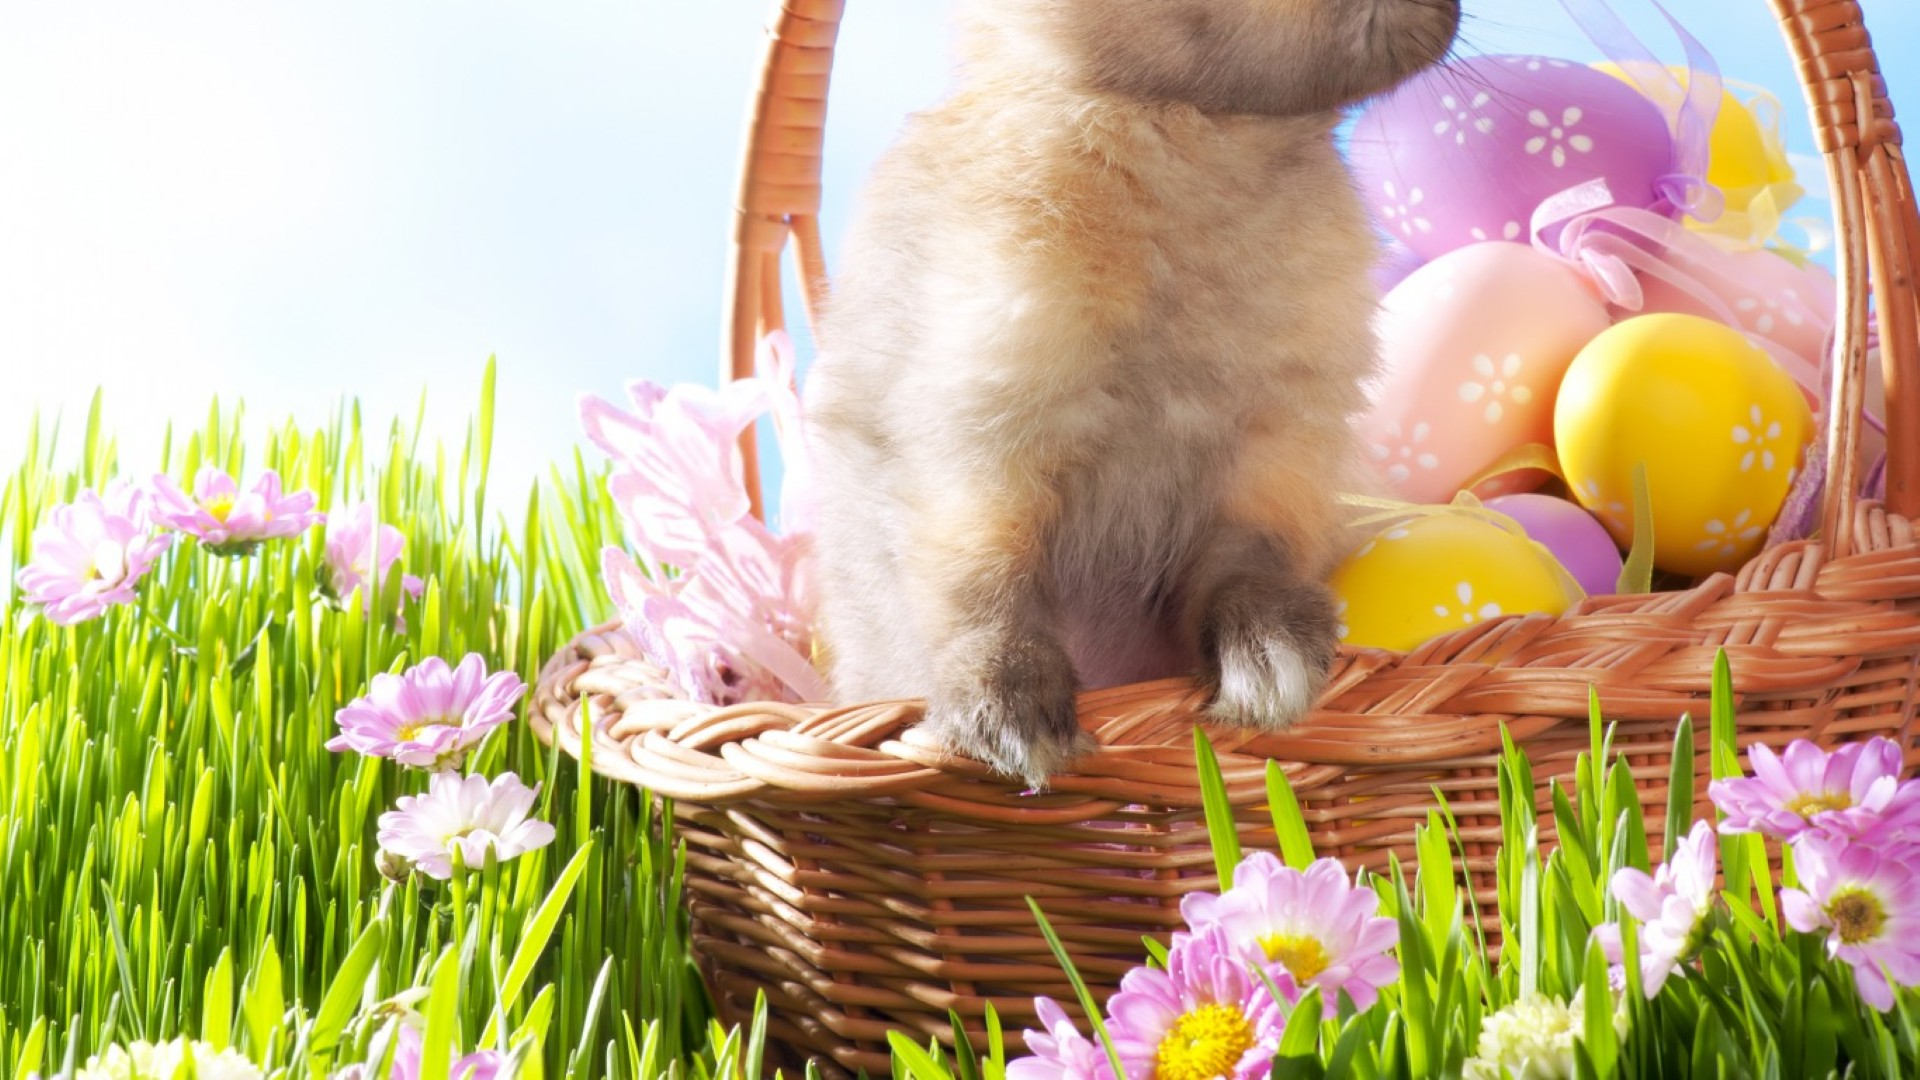 Free Download Easter Wallpaper Hd For Your Desktop 1920x1080 For